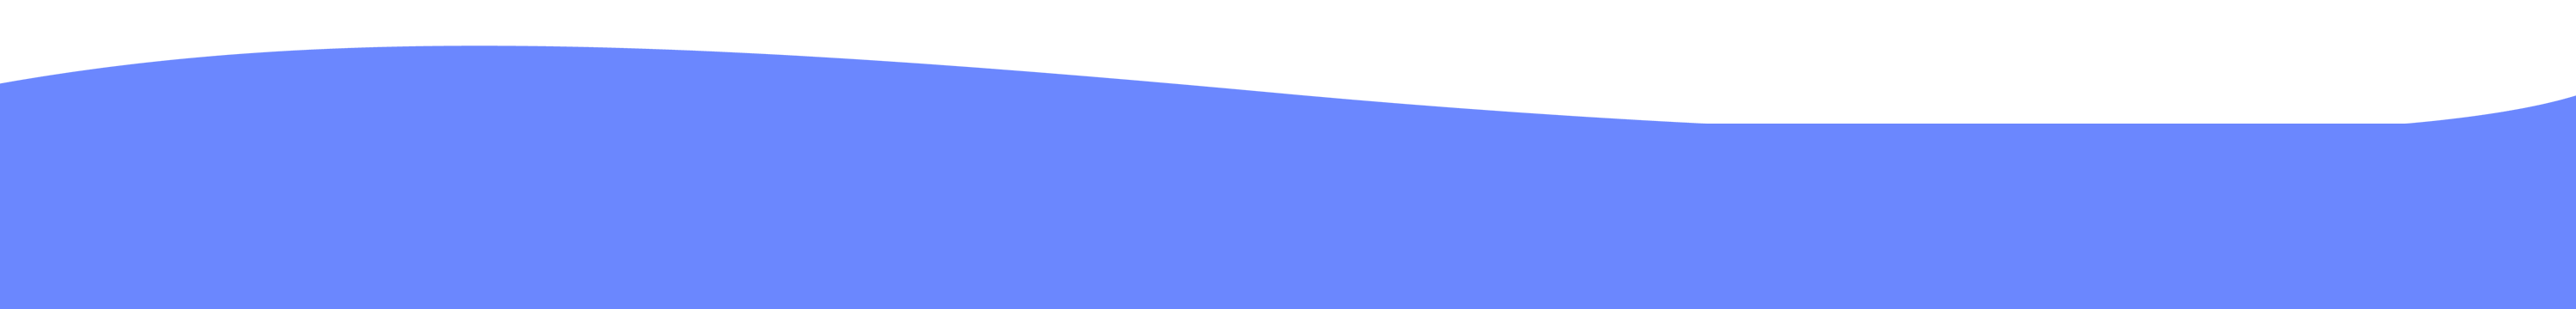 waves-cobalt-cut (2).png